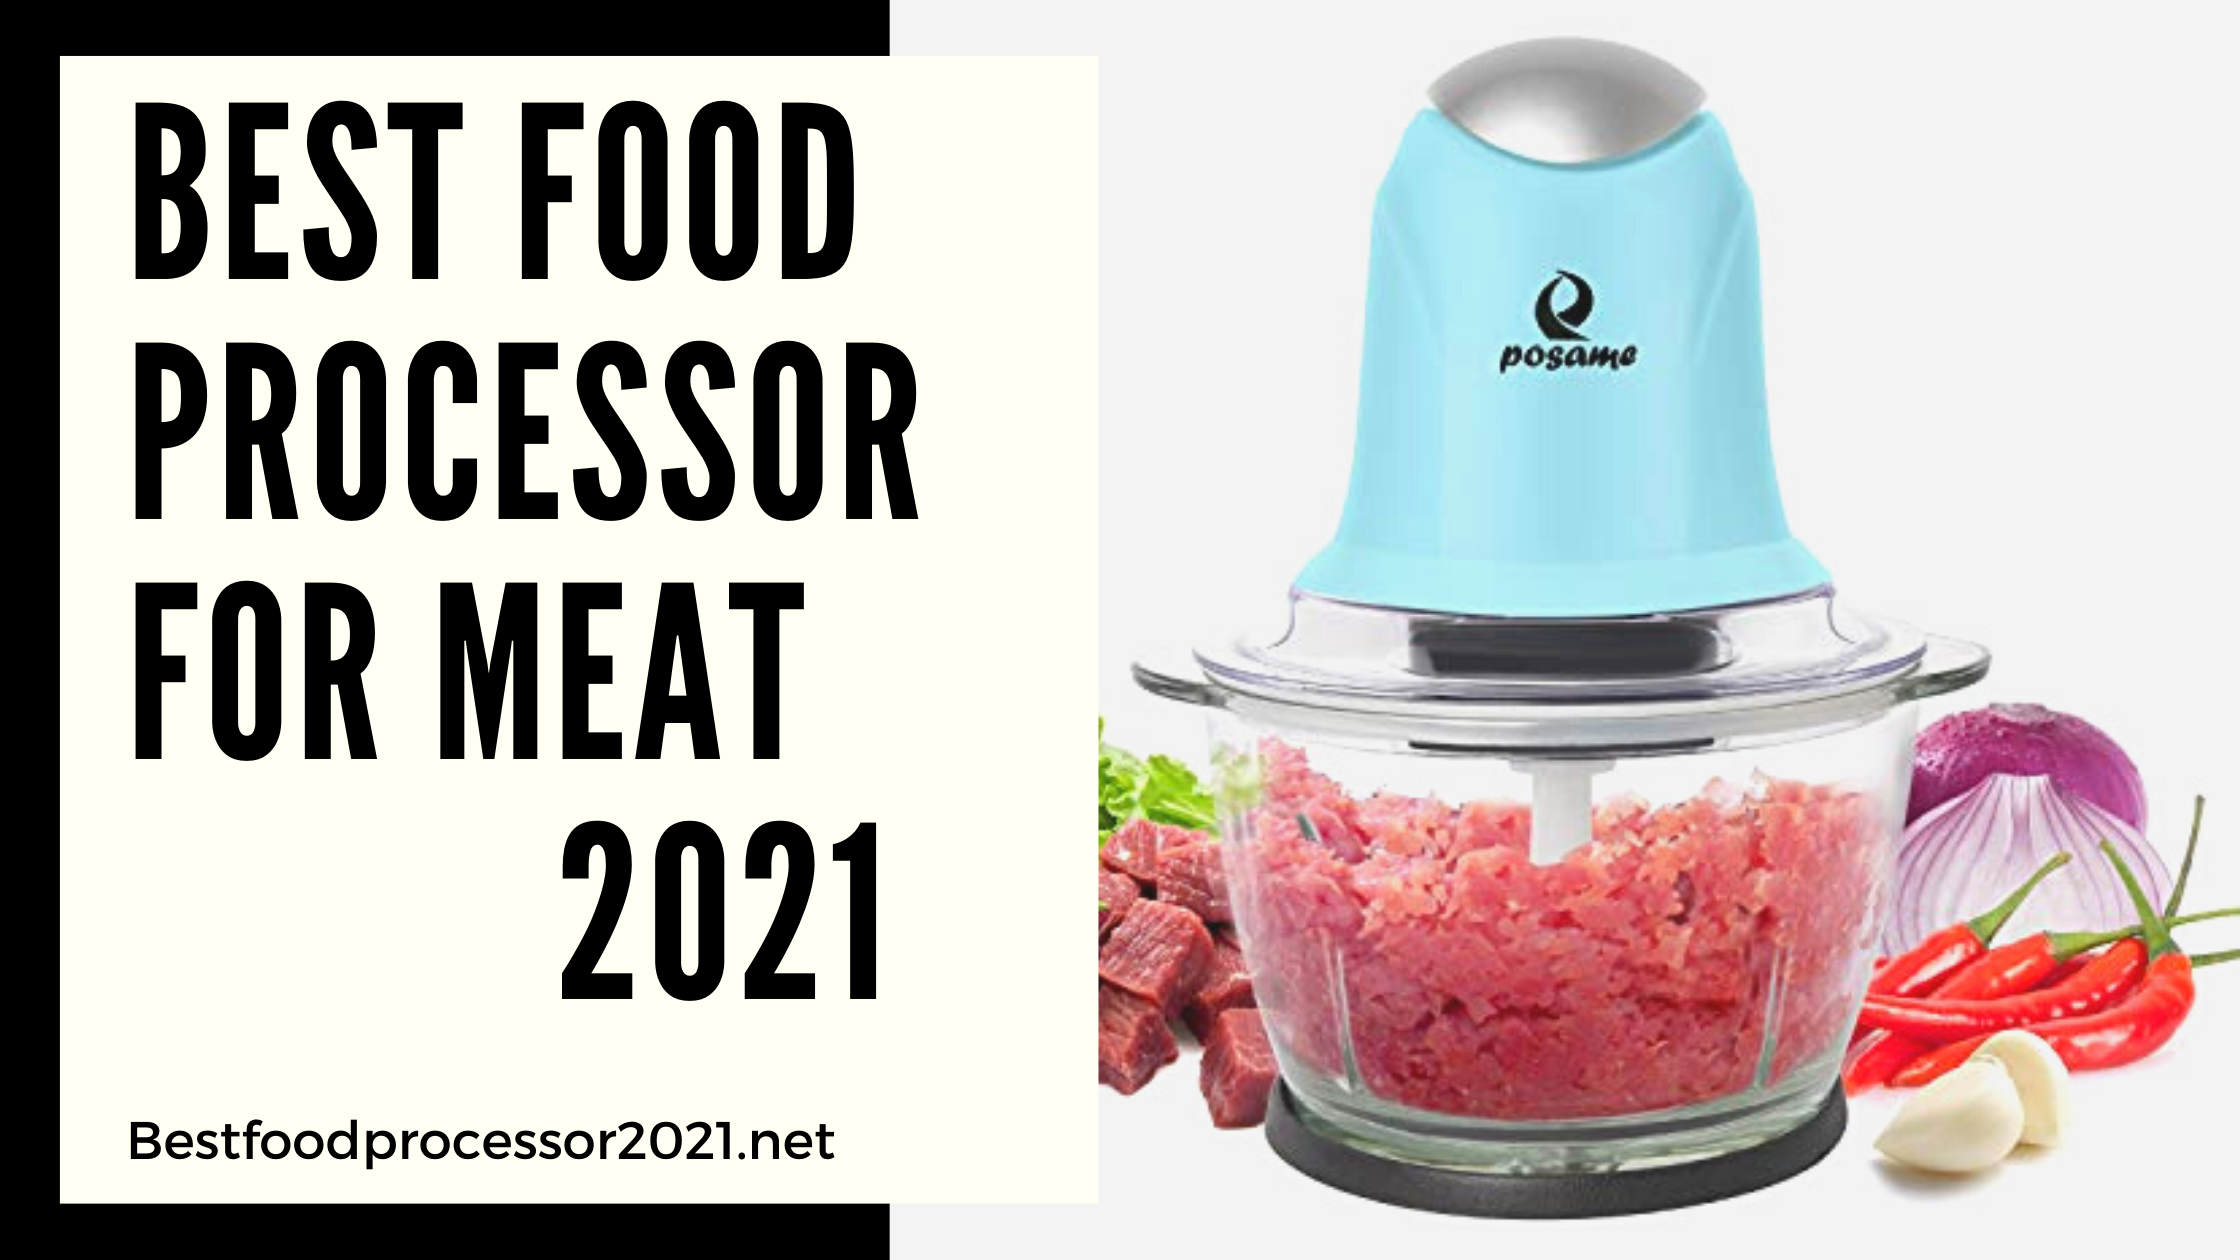 best food processor for meat 2021